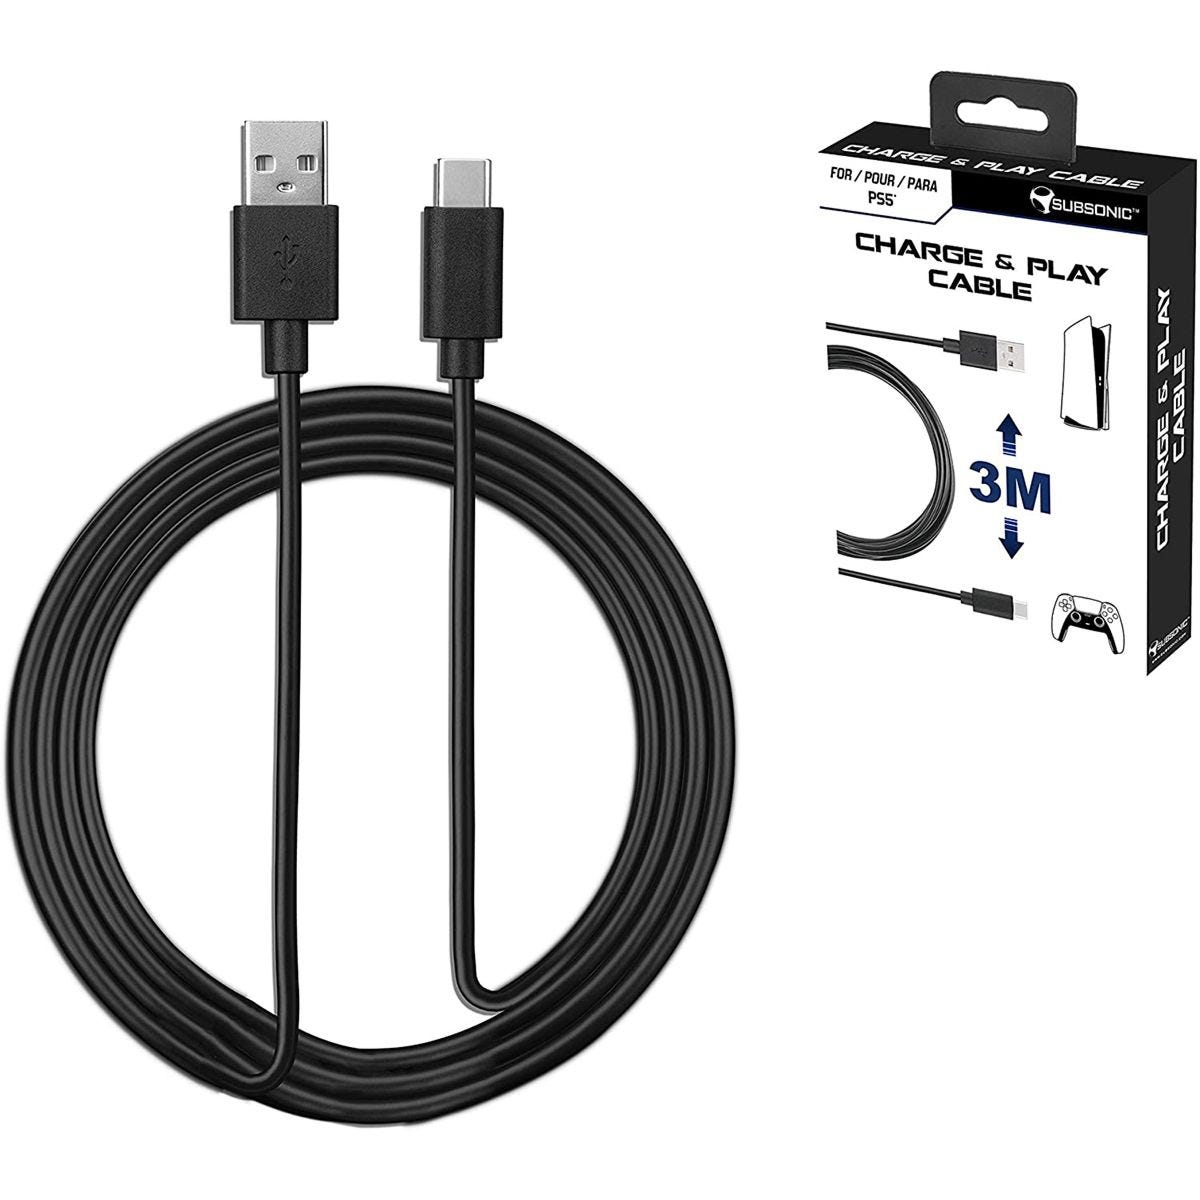 Subsonic USB C XXL 3m Charging Cable for PS5 Controller - Black